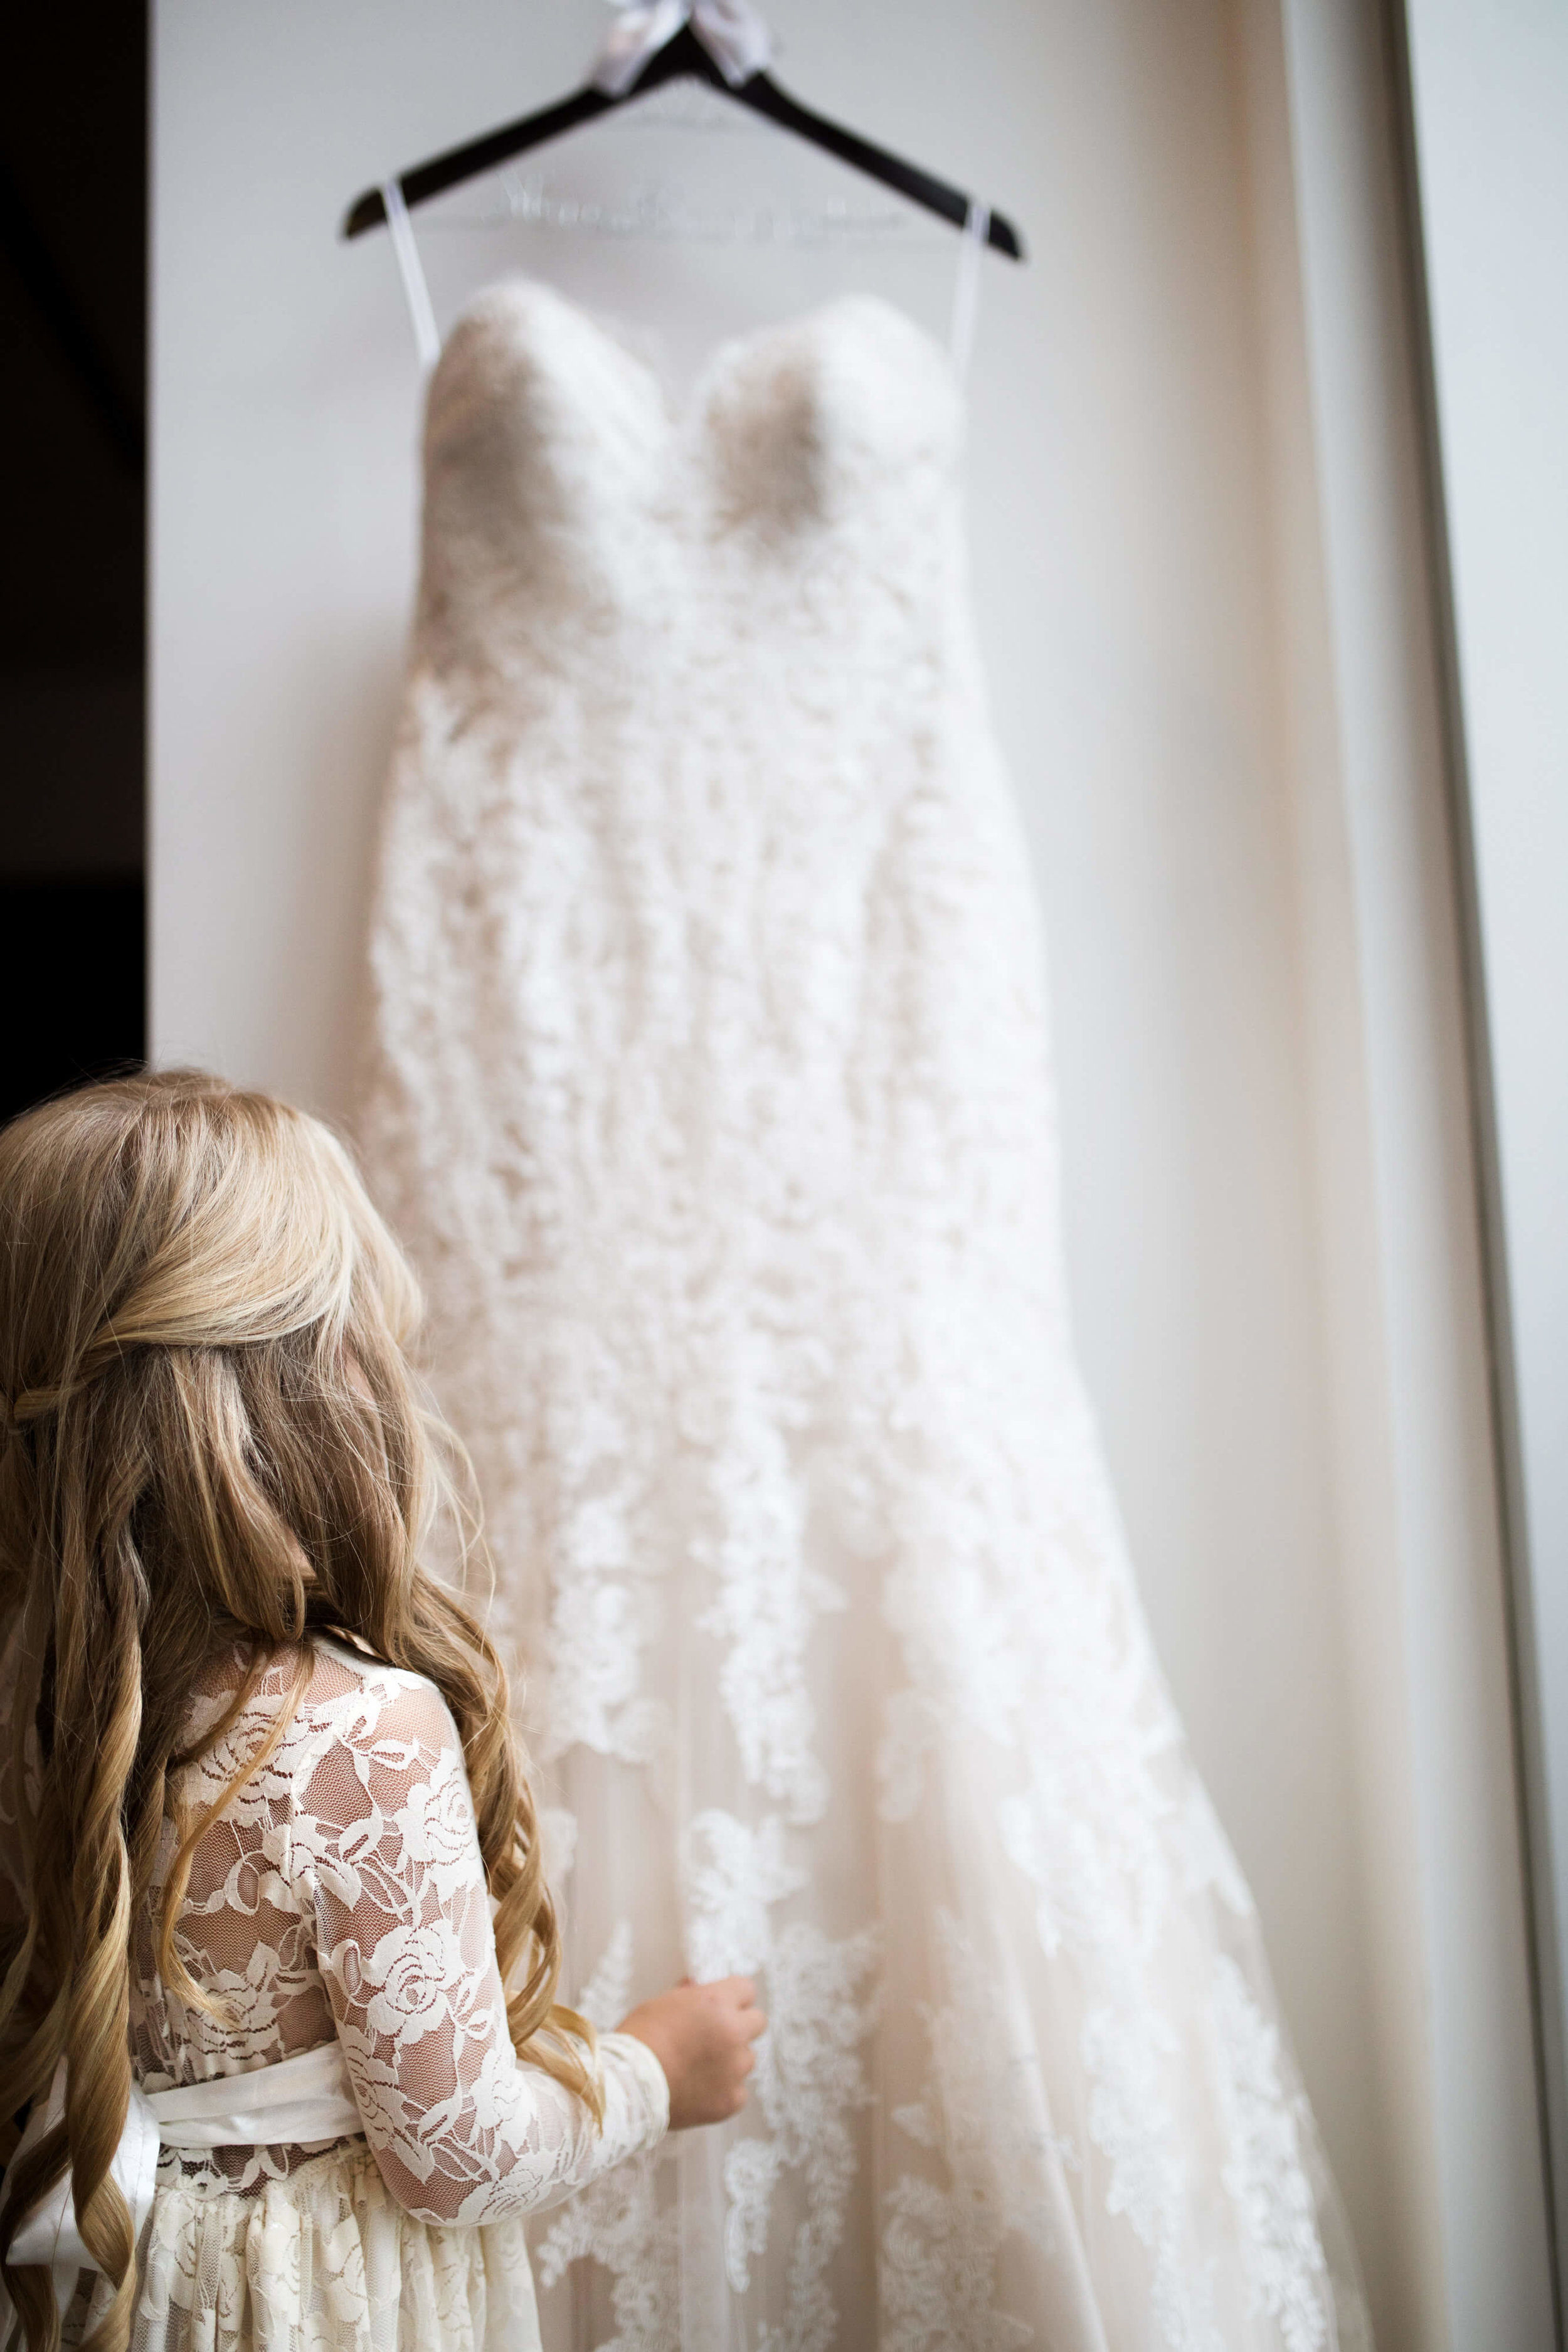 Studio KH wedding photographer | Sixpence Events and Planning, free wedding blog, free wedding help, free wedding advice | flower girl looking at the dress